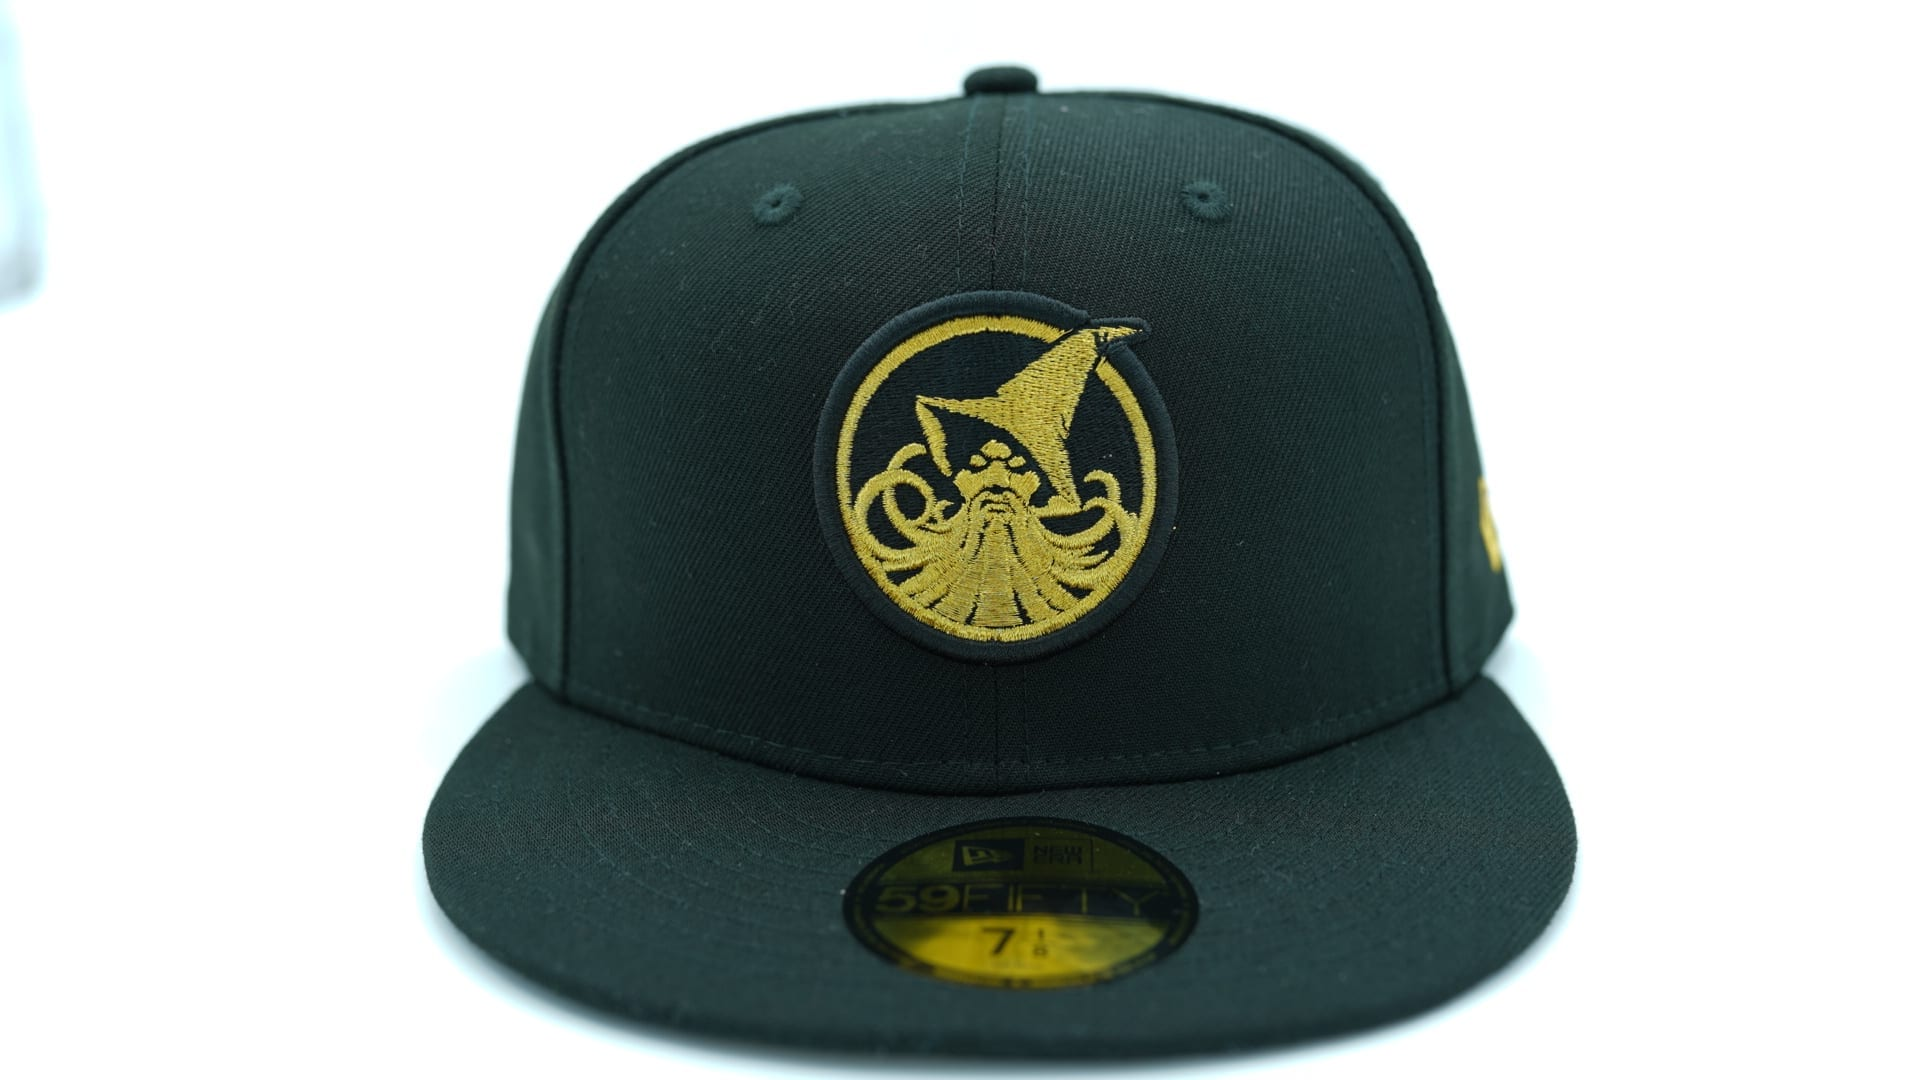 New Era 59Fifty Fitted Caps BESPOKE X BRANDIOSE Limited Edition d05ae262708c